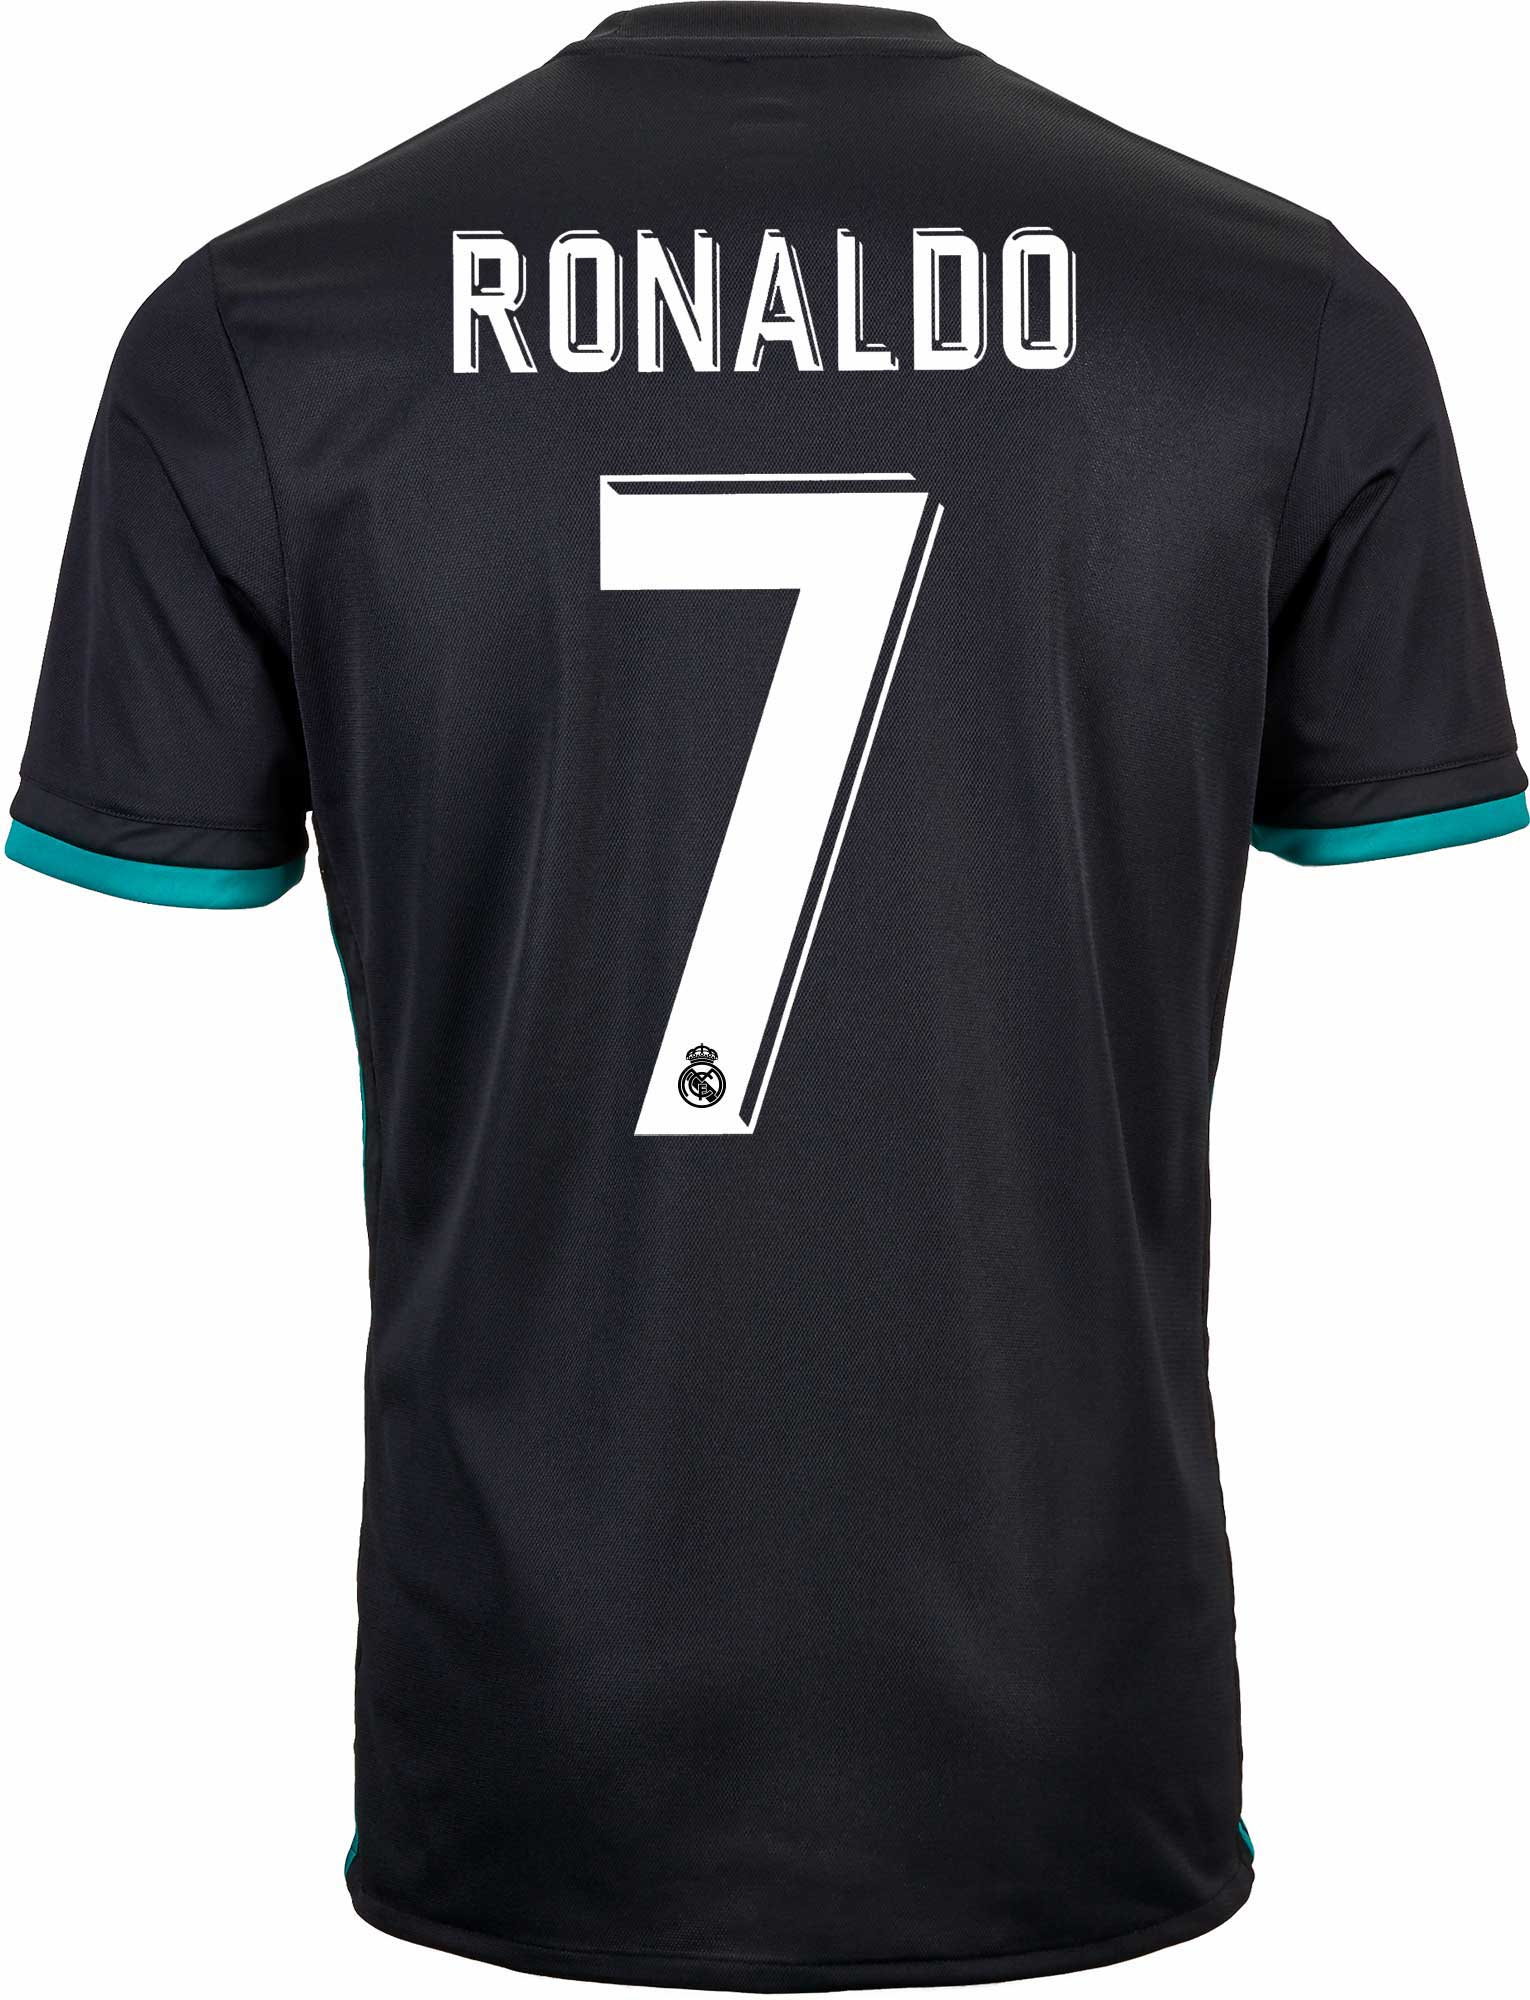 best cheap b6994 bc7ab Original Ronaldo Real Madrid Premium Away Jersey and Shorts [Optional] 17-18